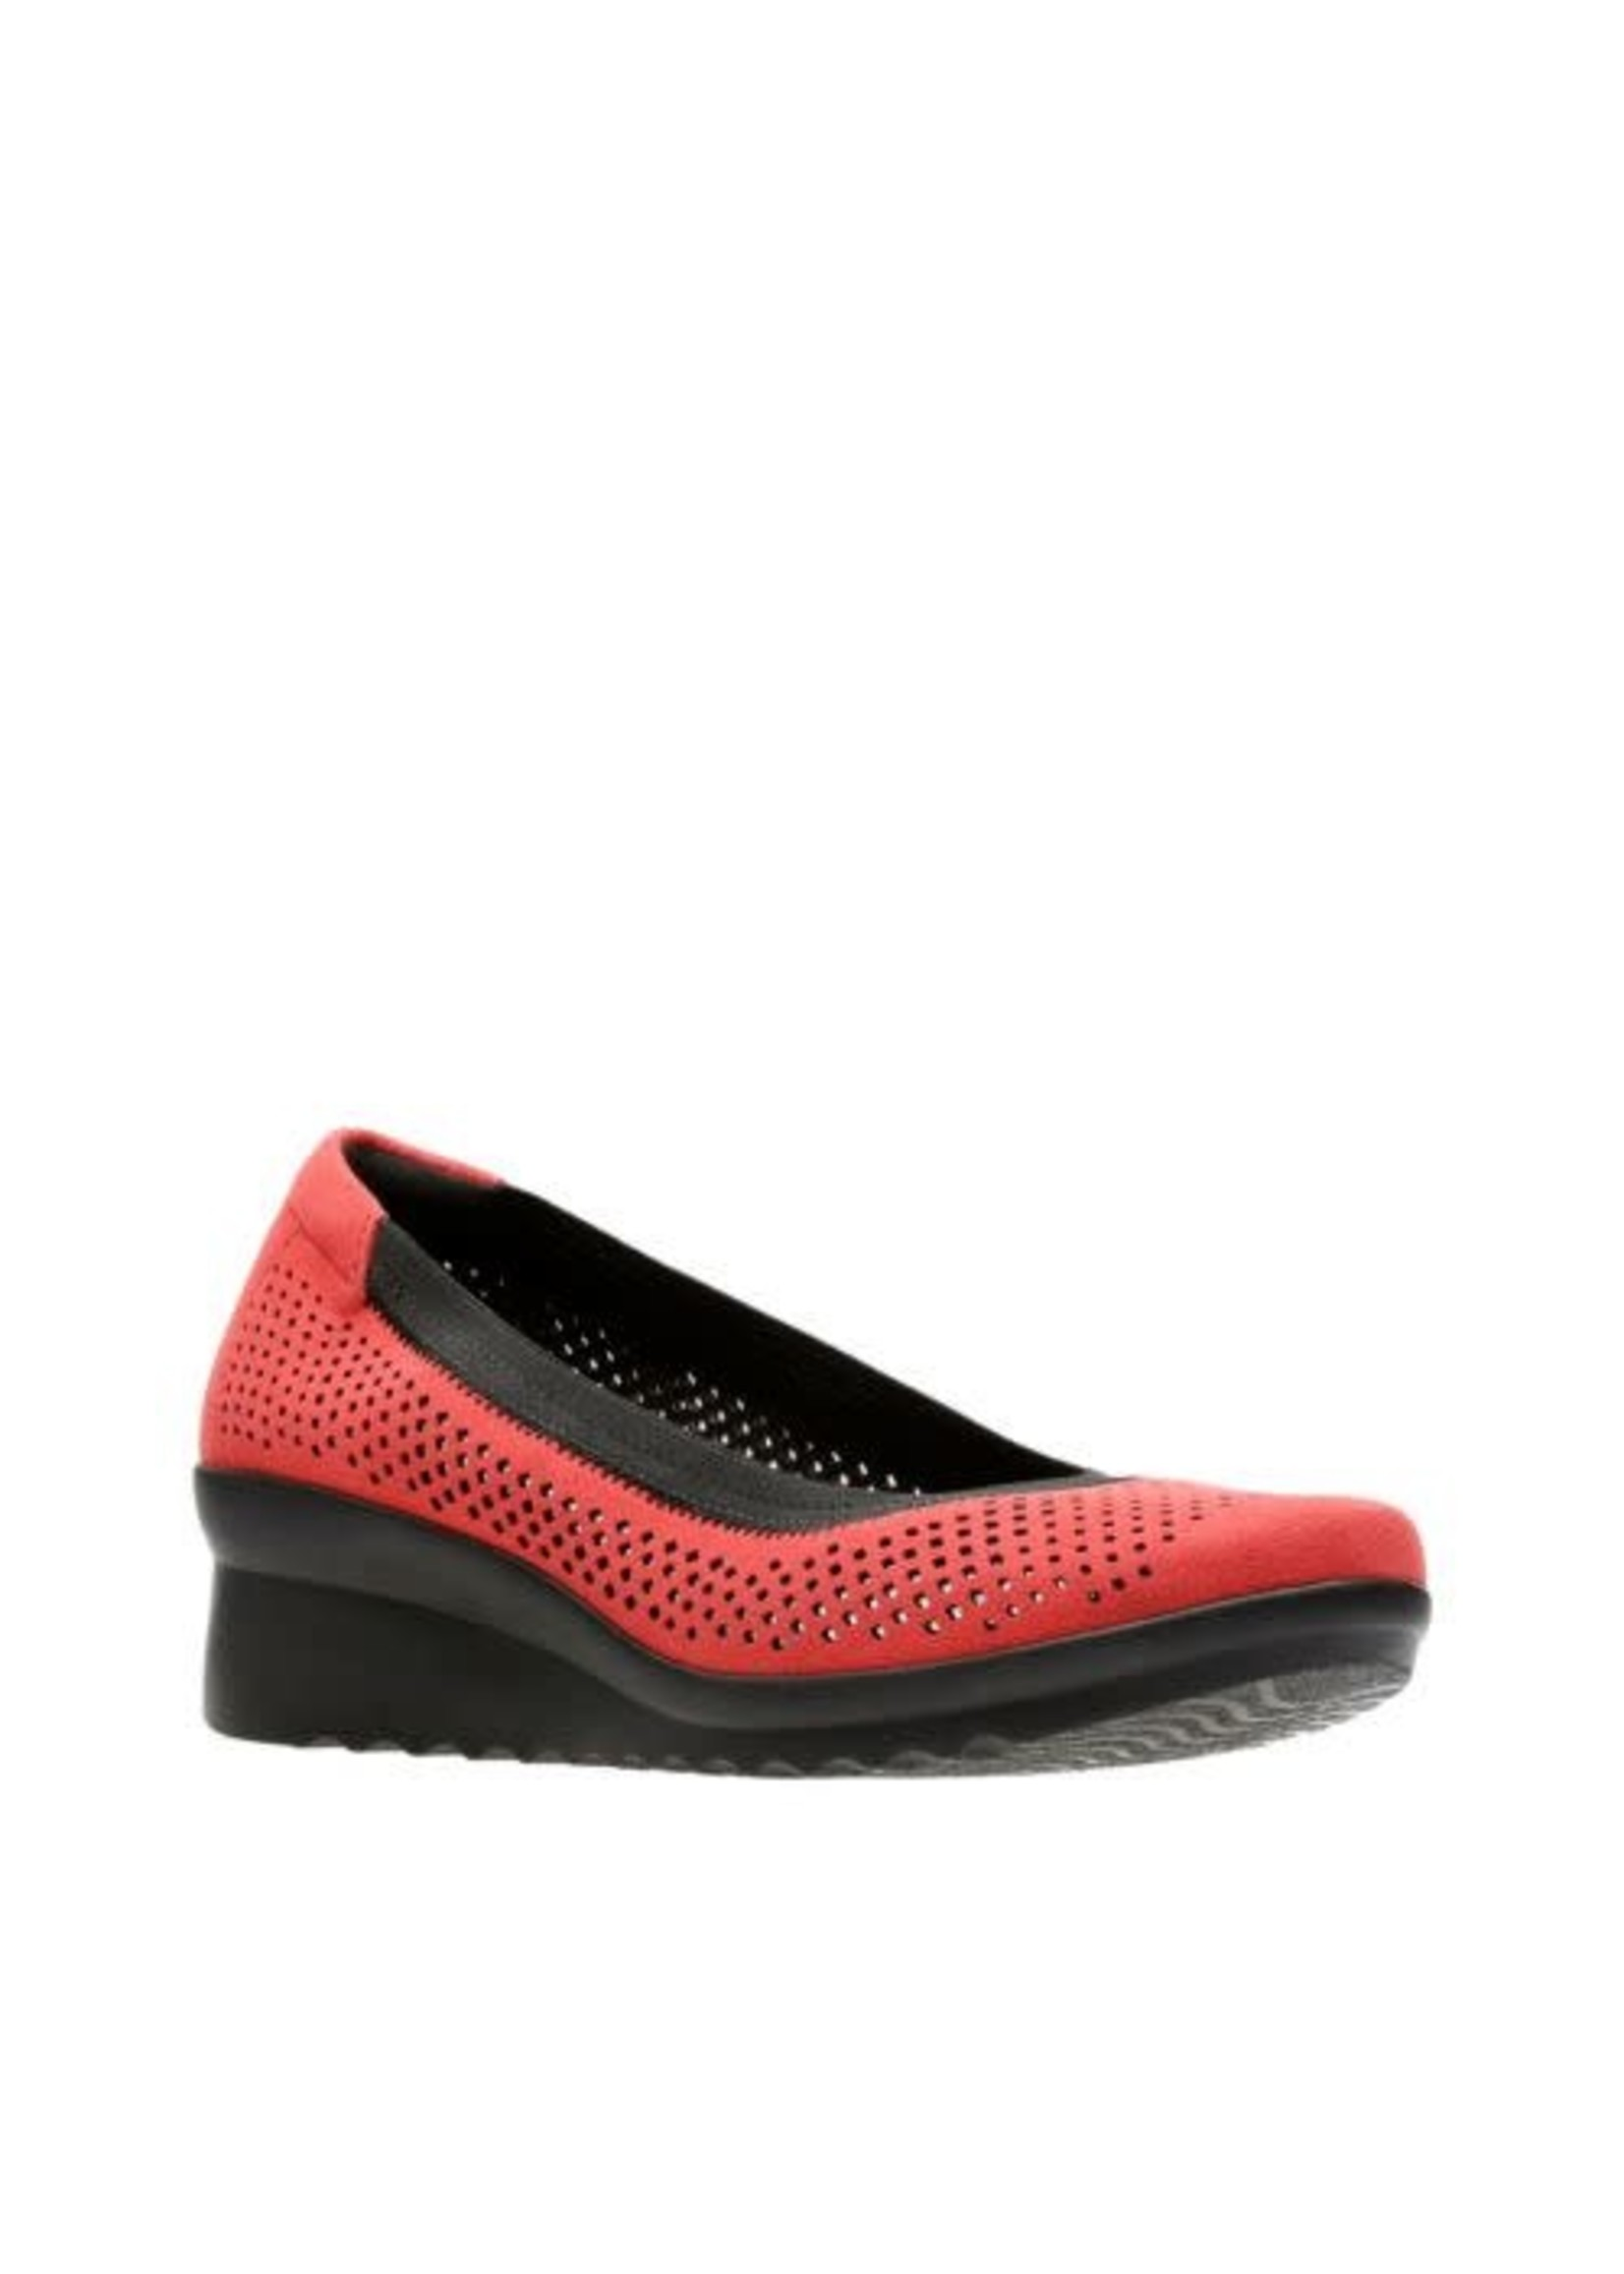 CLARKS CLARKS- CADDELL TRAIL- RED TEXTILE